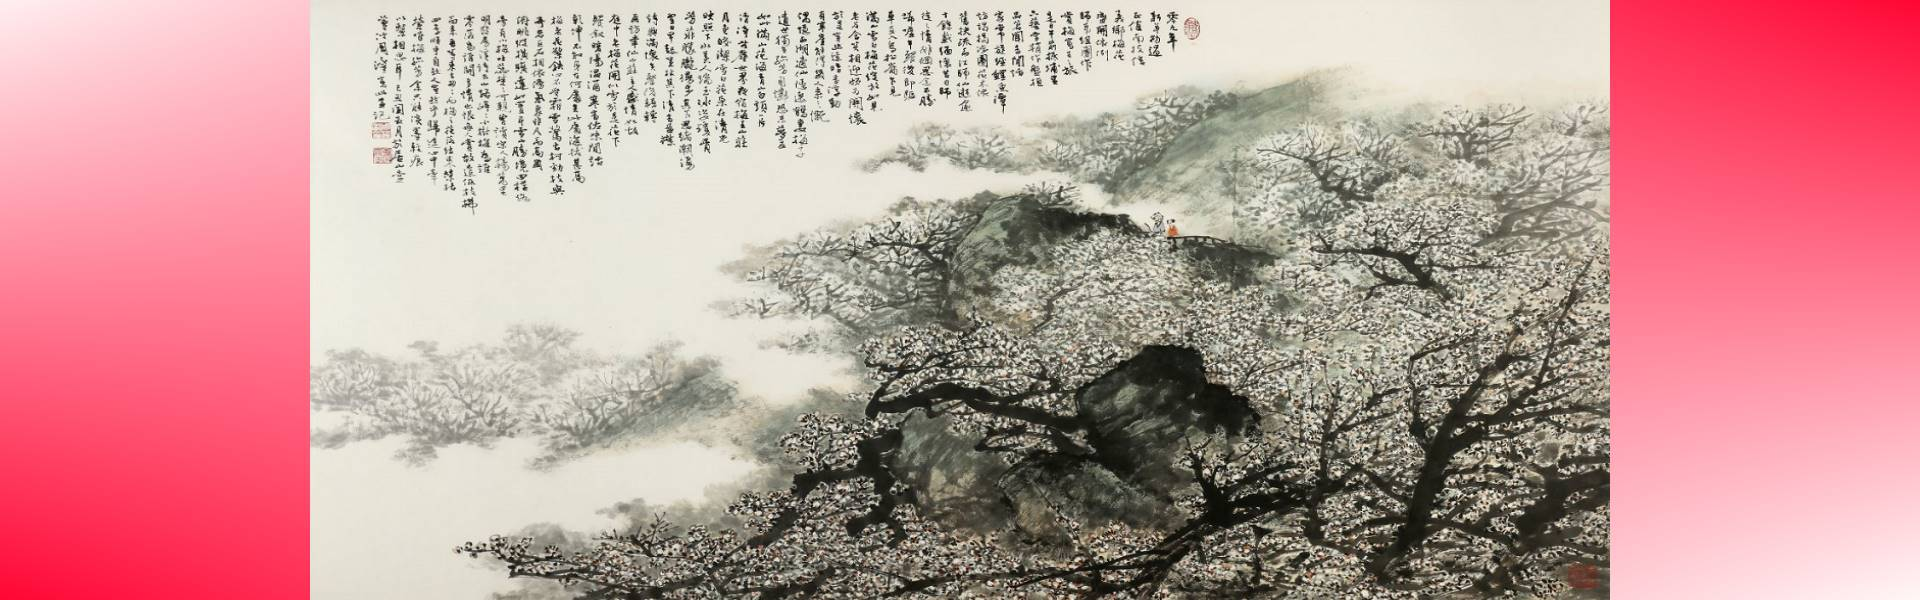 Chou-cheng 80-year-old Retrospective Exhibition「open a new window」